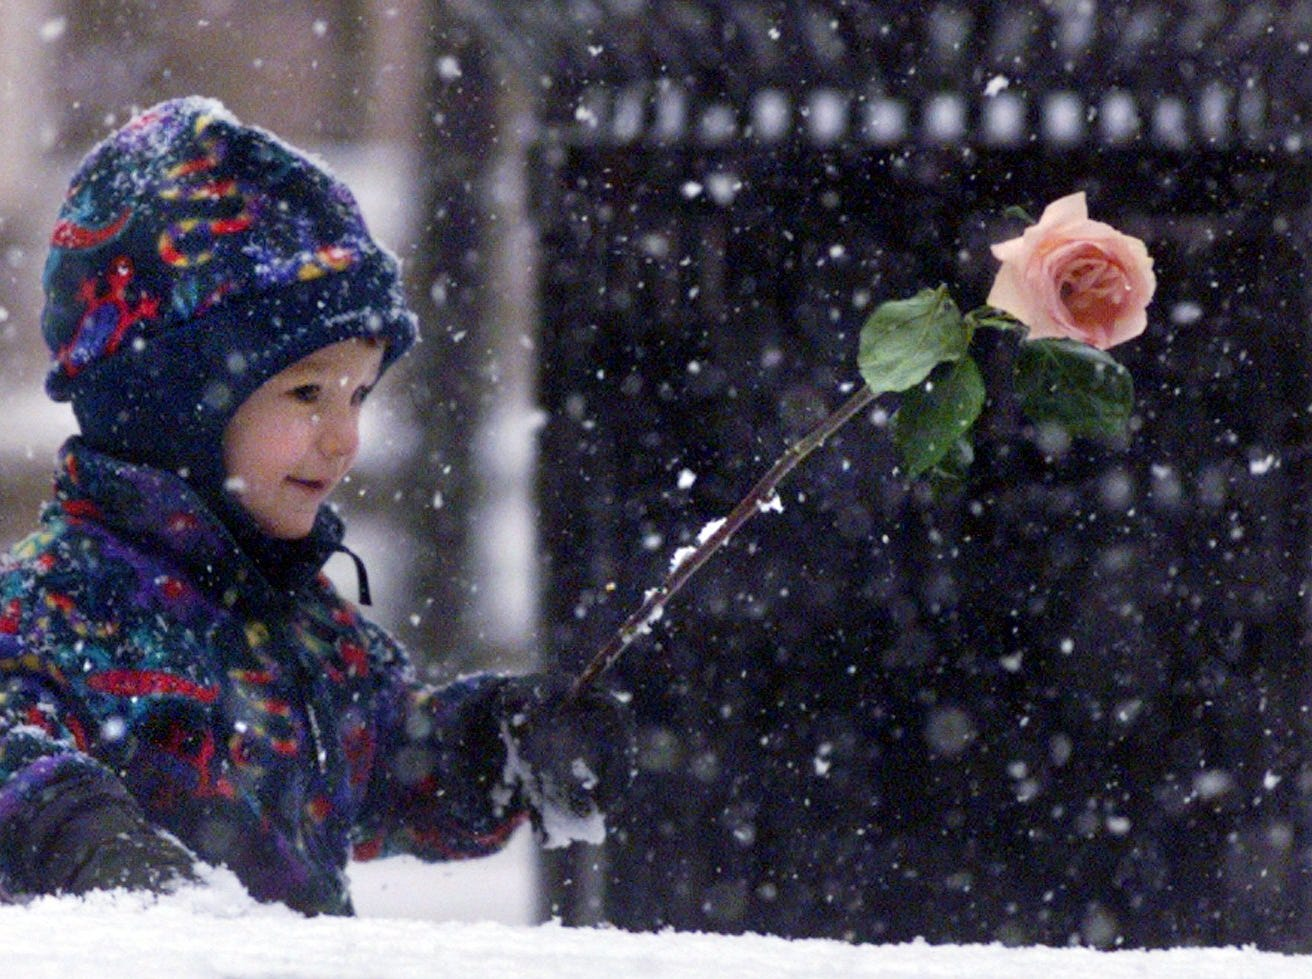 Sidney Lanier, 2, plays with a rose in the snow in downtown Greenville Saturday January 1, 2000.